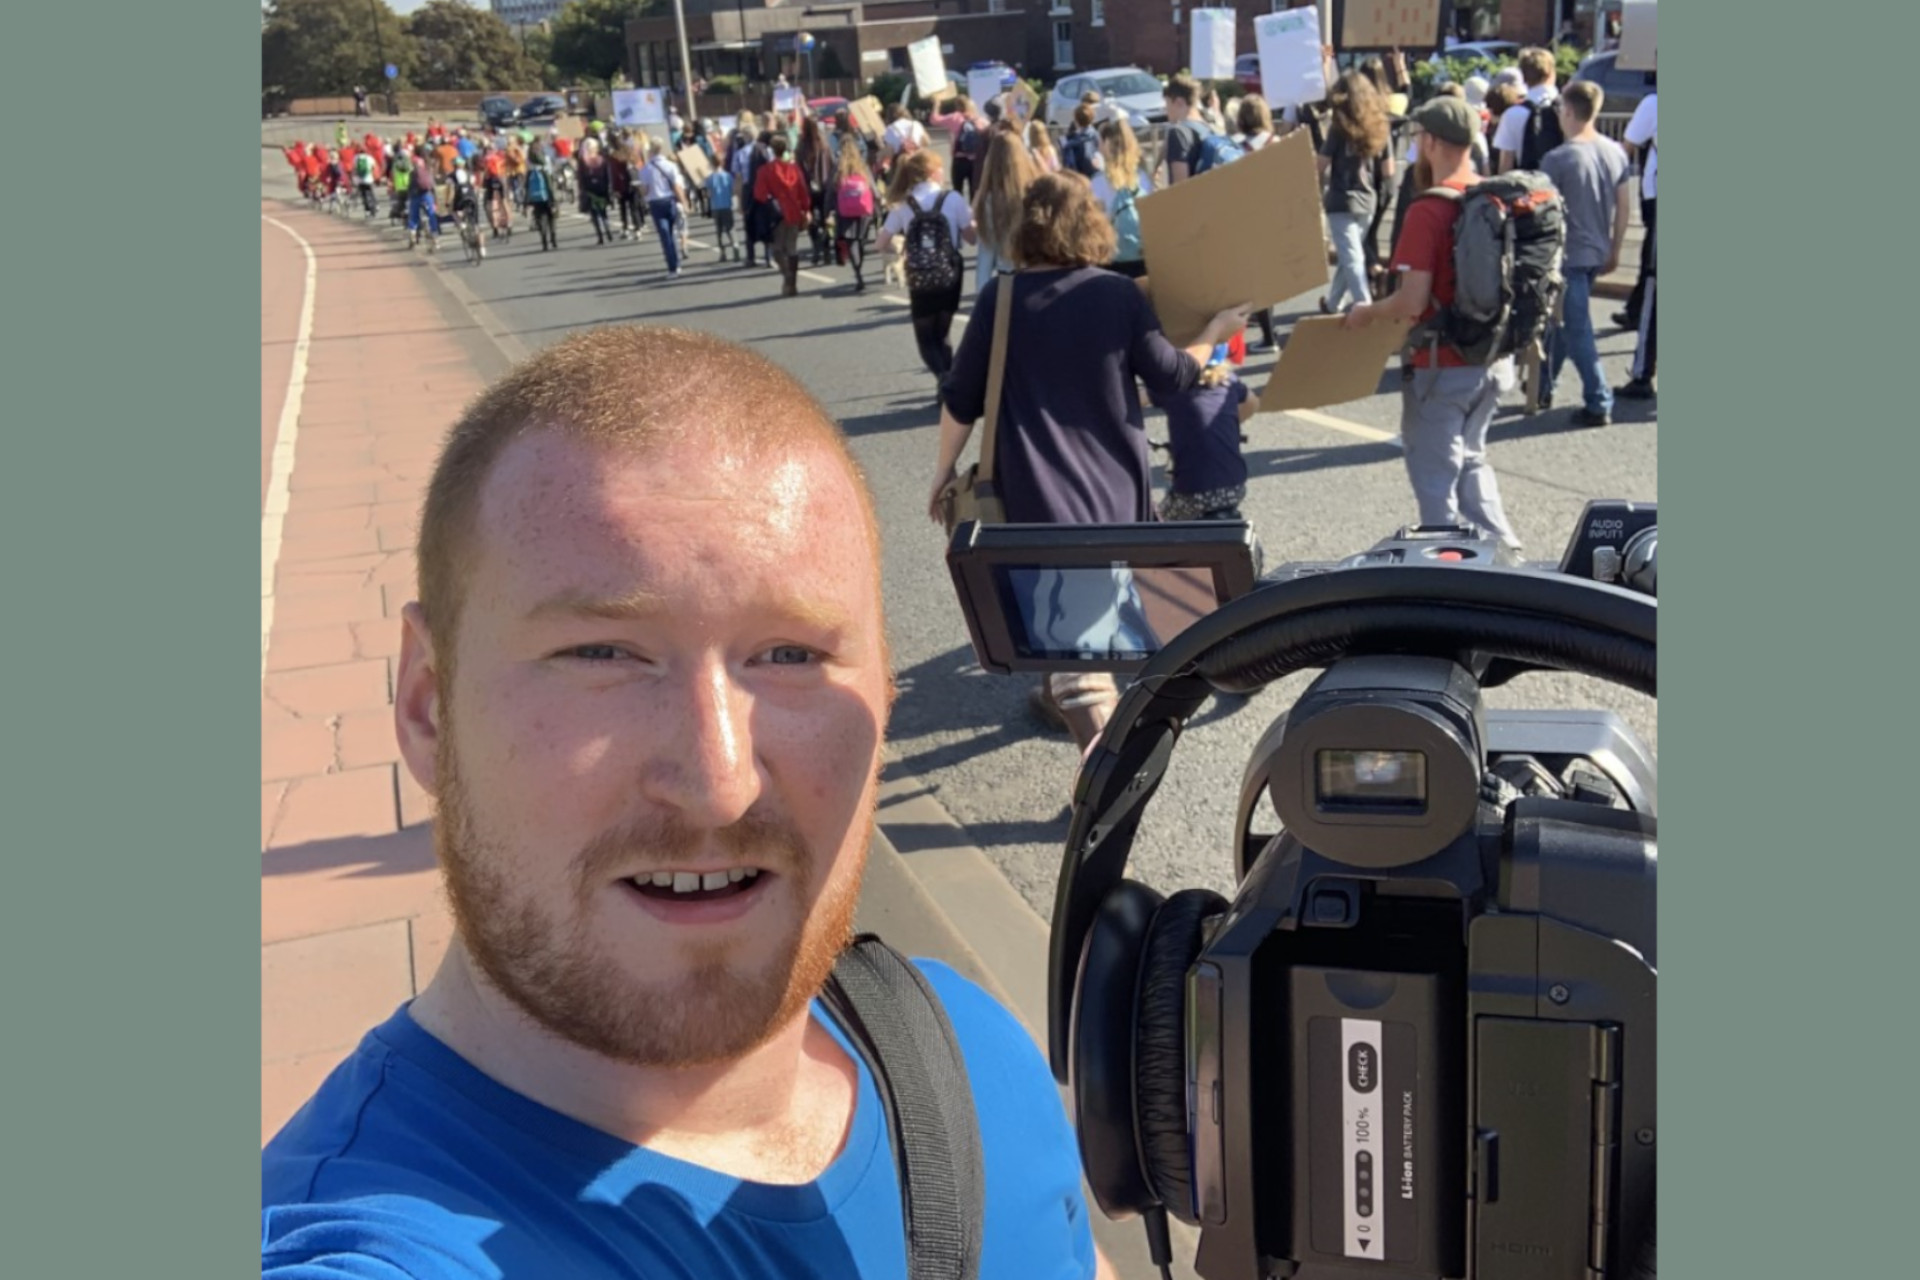 Kieran Macfadzean pictured filming Carlisle's Climate Strike in September 2019